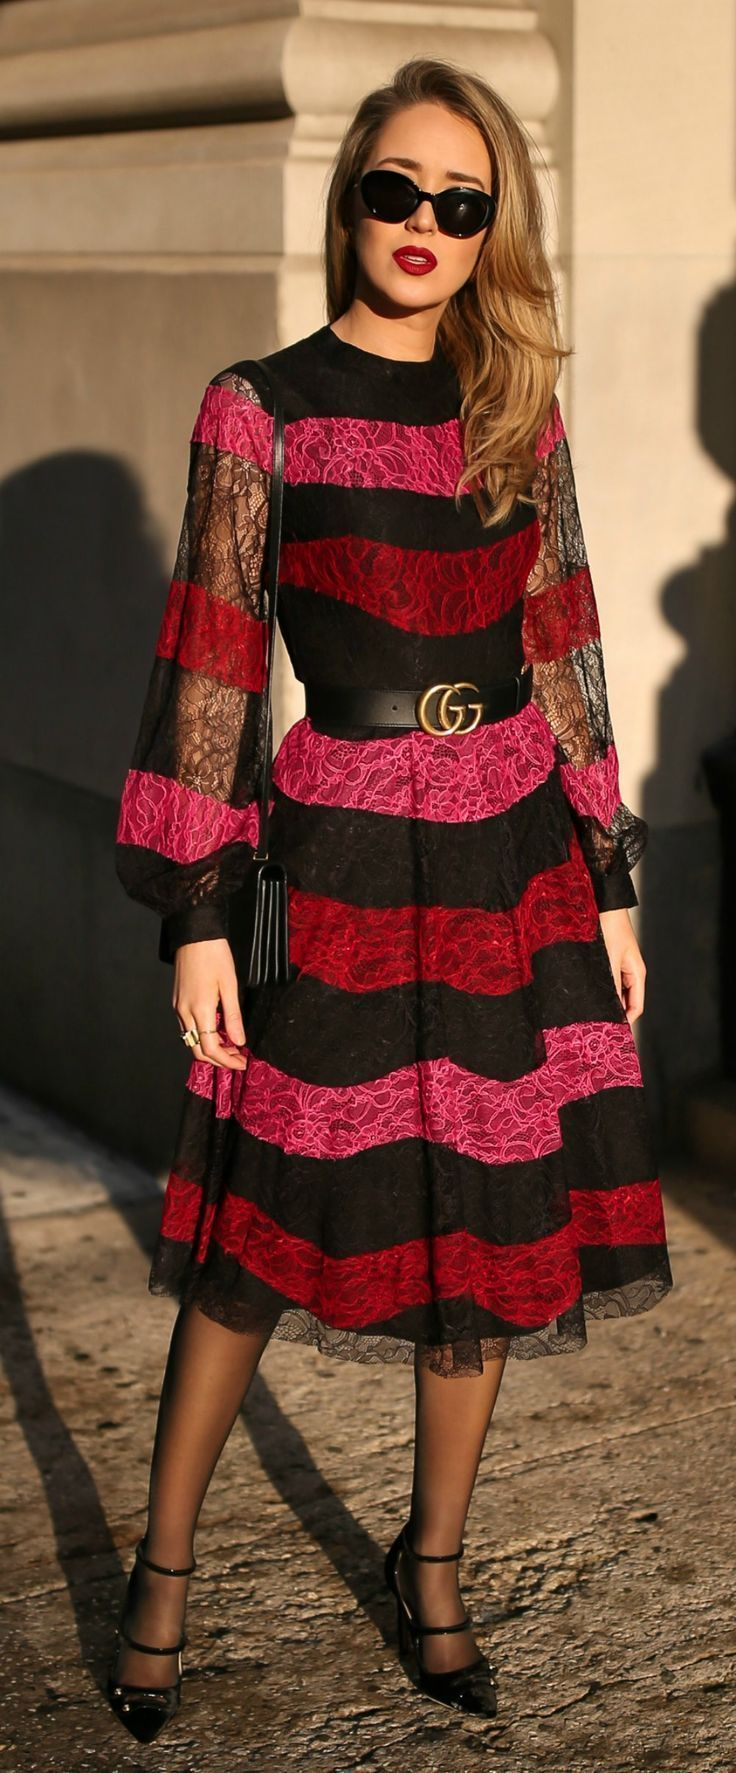 fabulous red gucci belt outfit